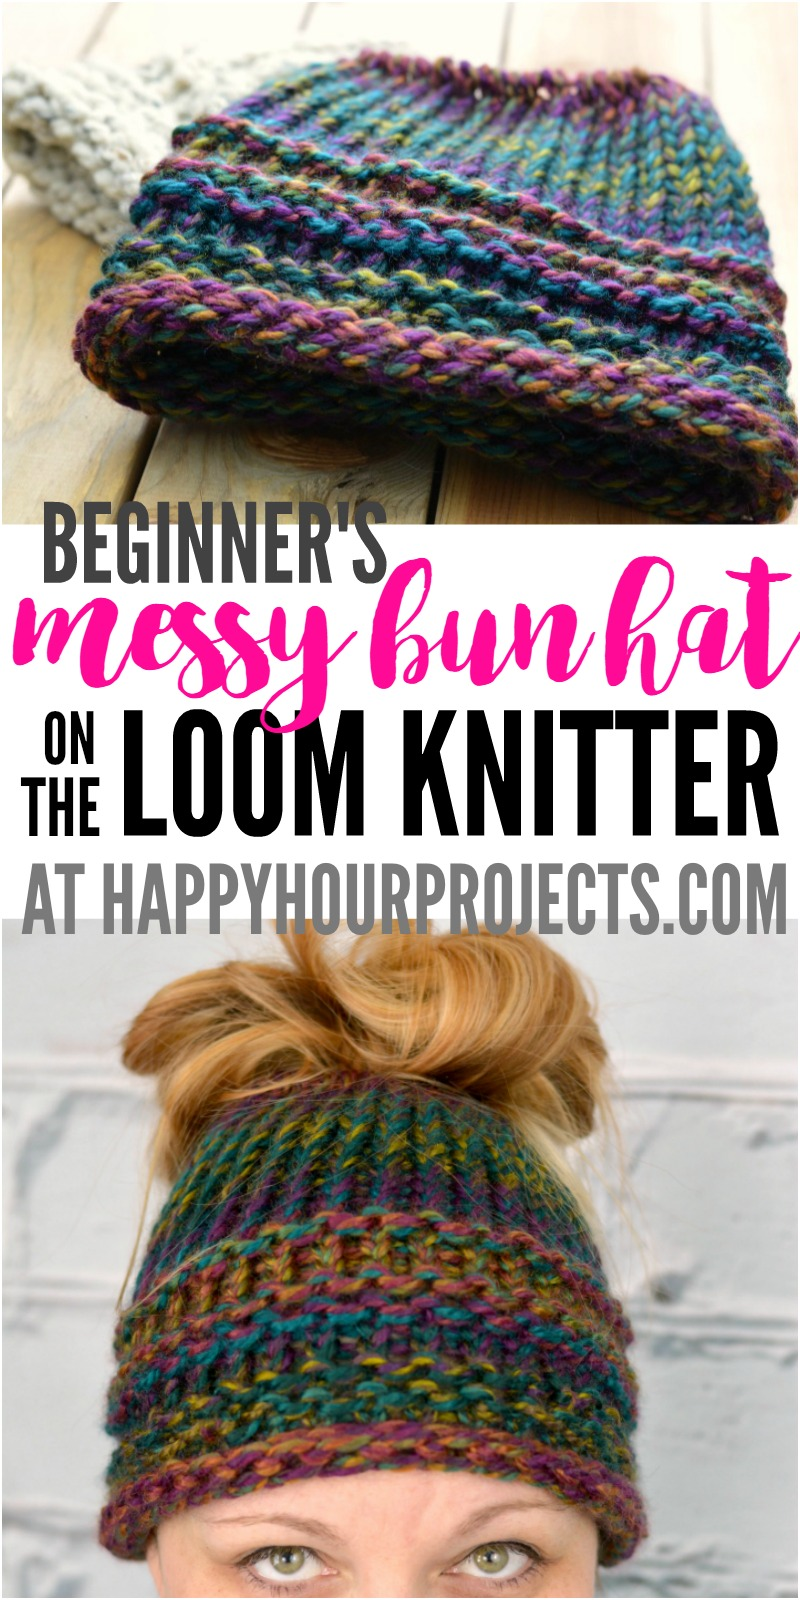 DIY Messy Bun Hat | Loom Knitter Pattern for Beginners - Happy Hour ...